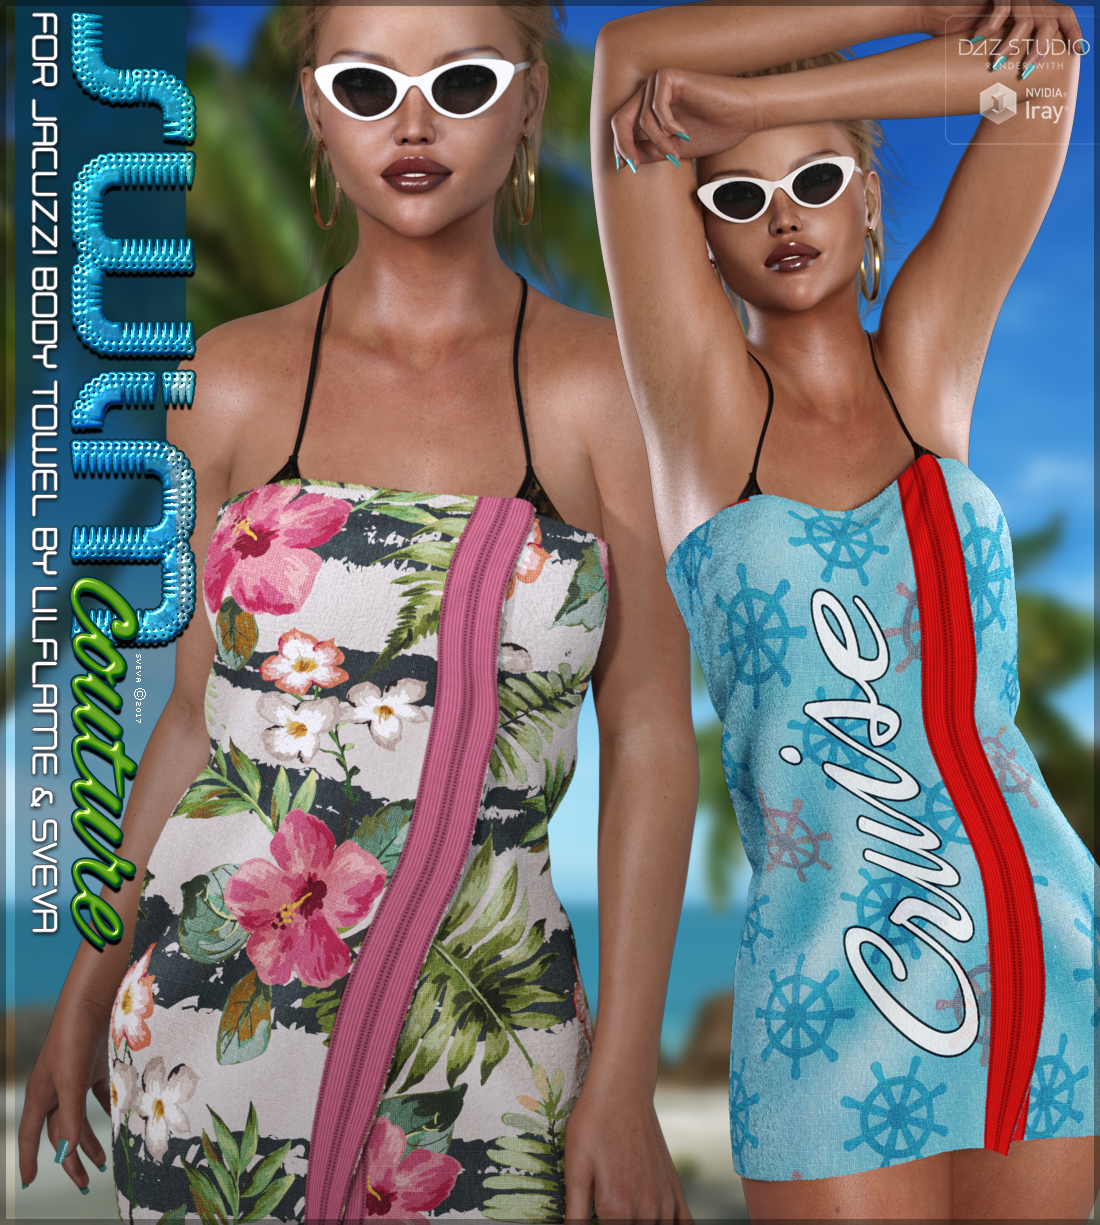 SWIM Couture for Jacuzzi Body Towel